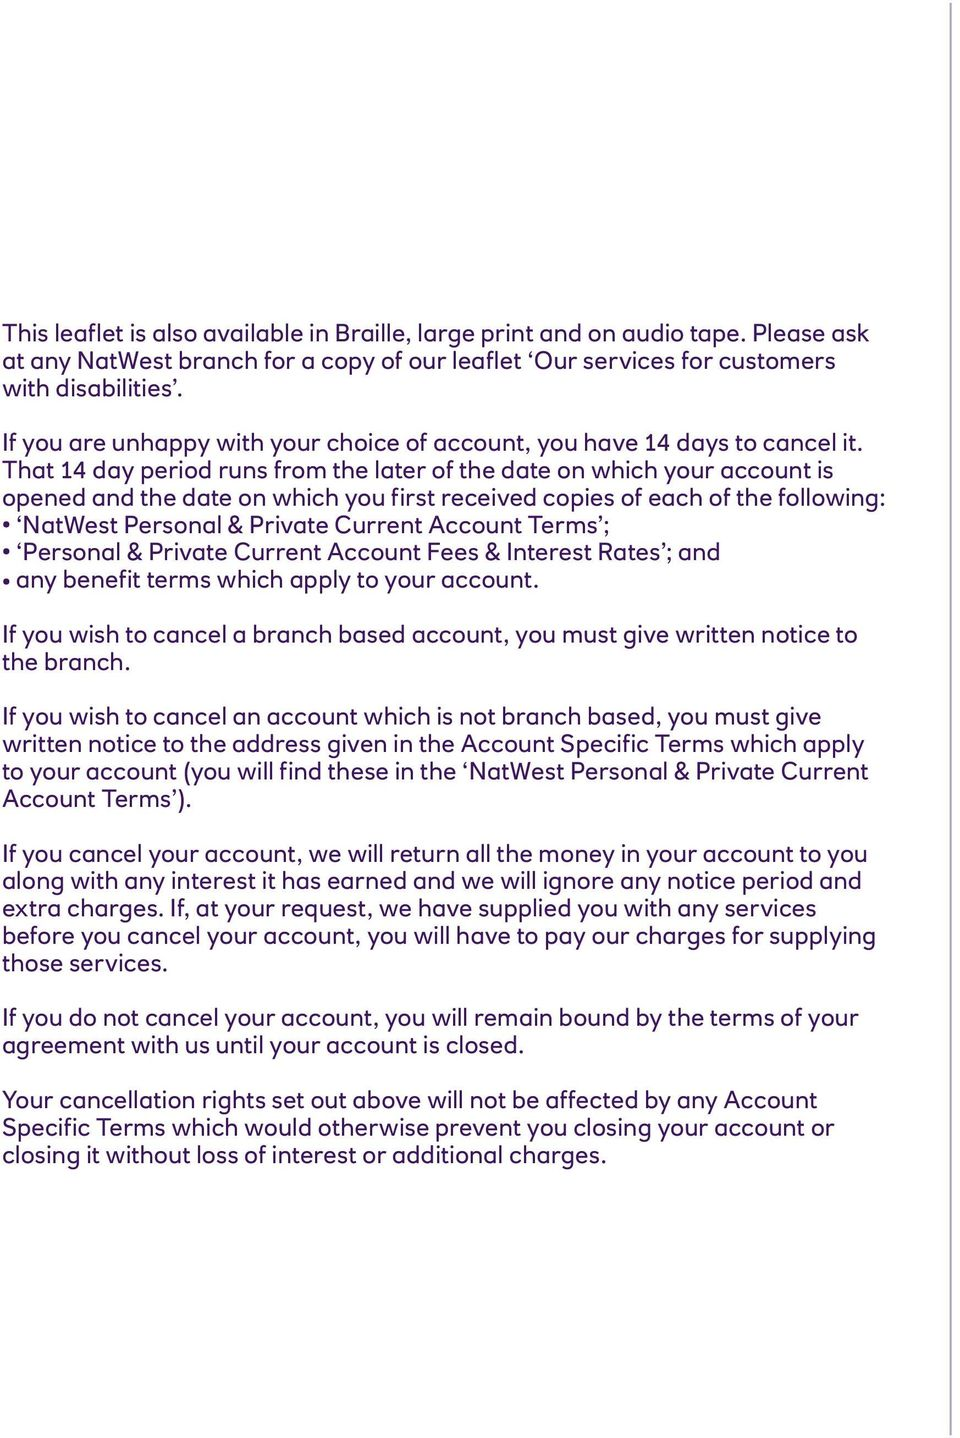 That 14 day period runs from the later of the date on which your account is opened and the date on which you first received copies of each of the following: NatWest Personal & Private Current Account